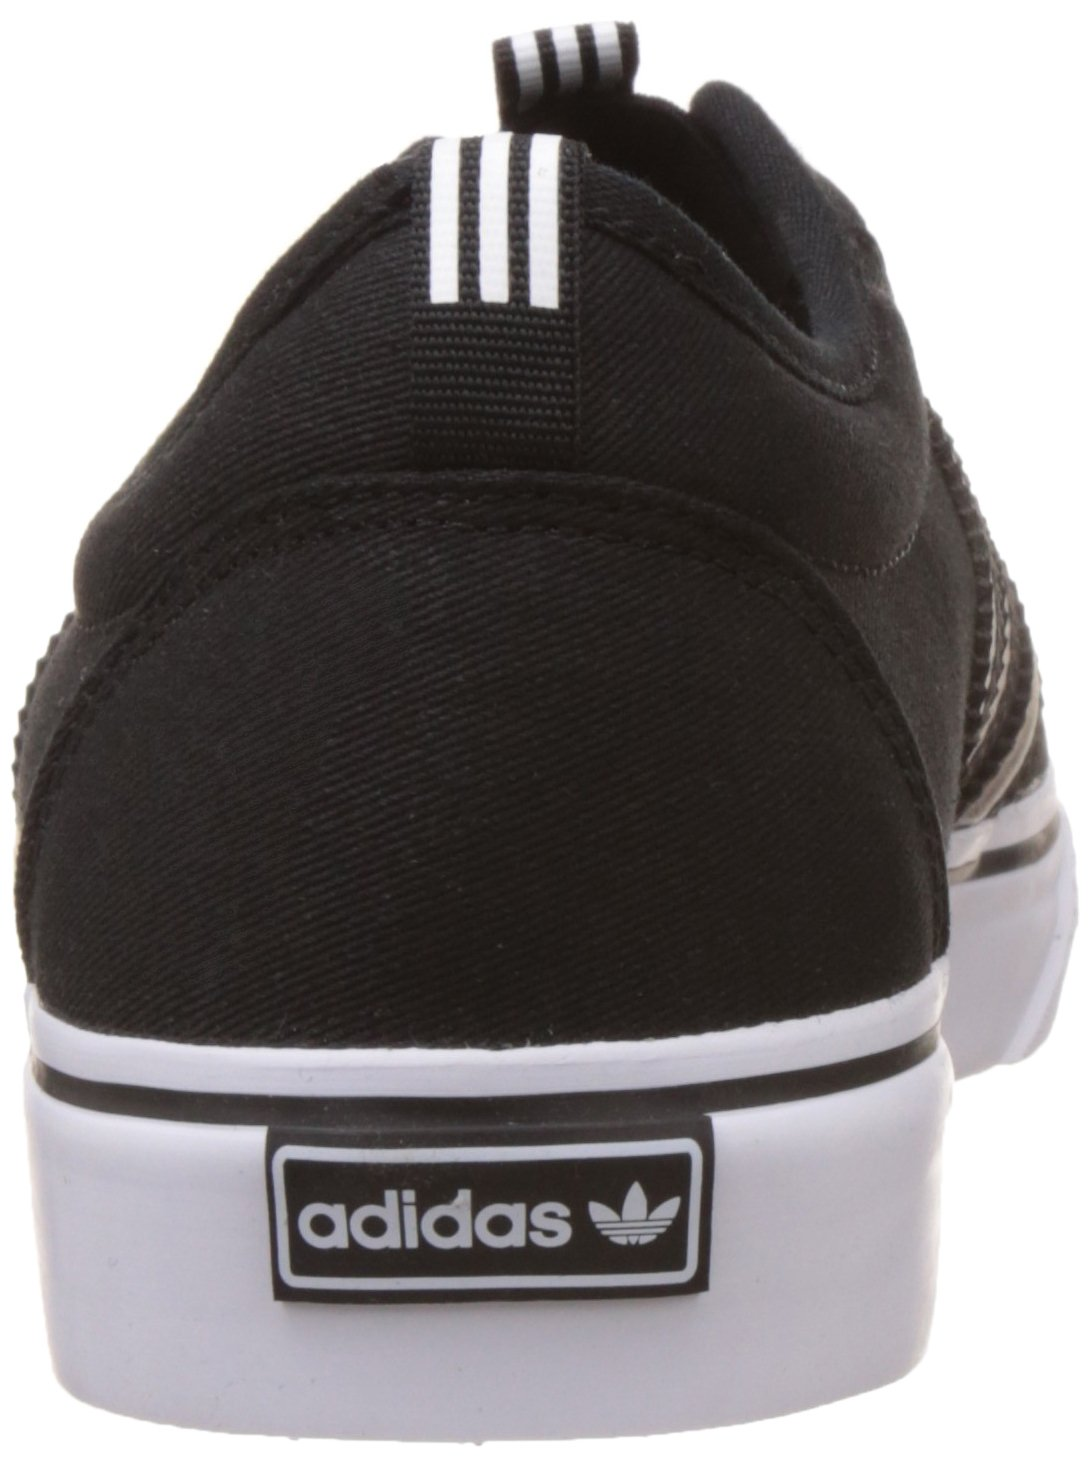 sale retailer 70a59 e37c1 adidas Adi-Ease Kung-fu Skateboarding Chaussures Homme, Gris, Homme, ADI-Ease  Kung-FU Amazon.fr Sports et Loisirs